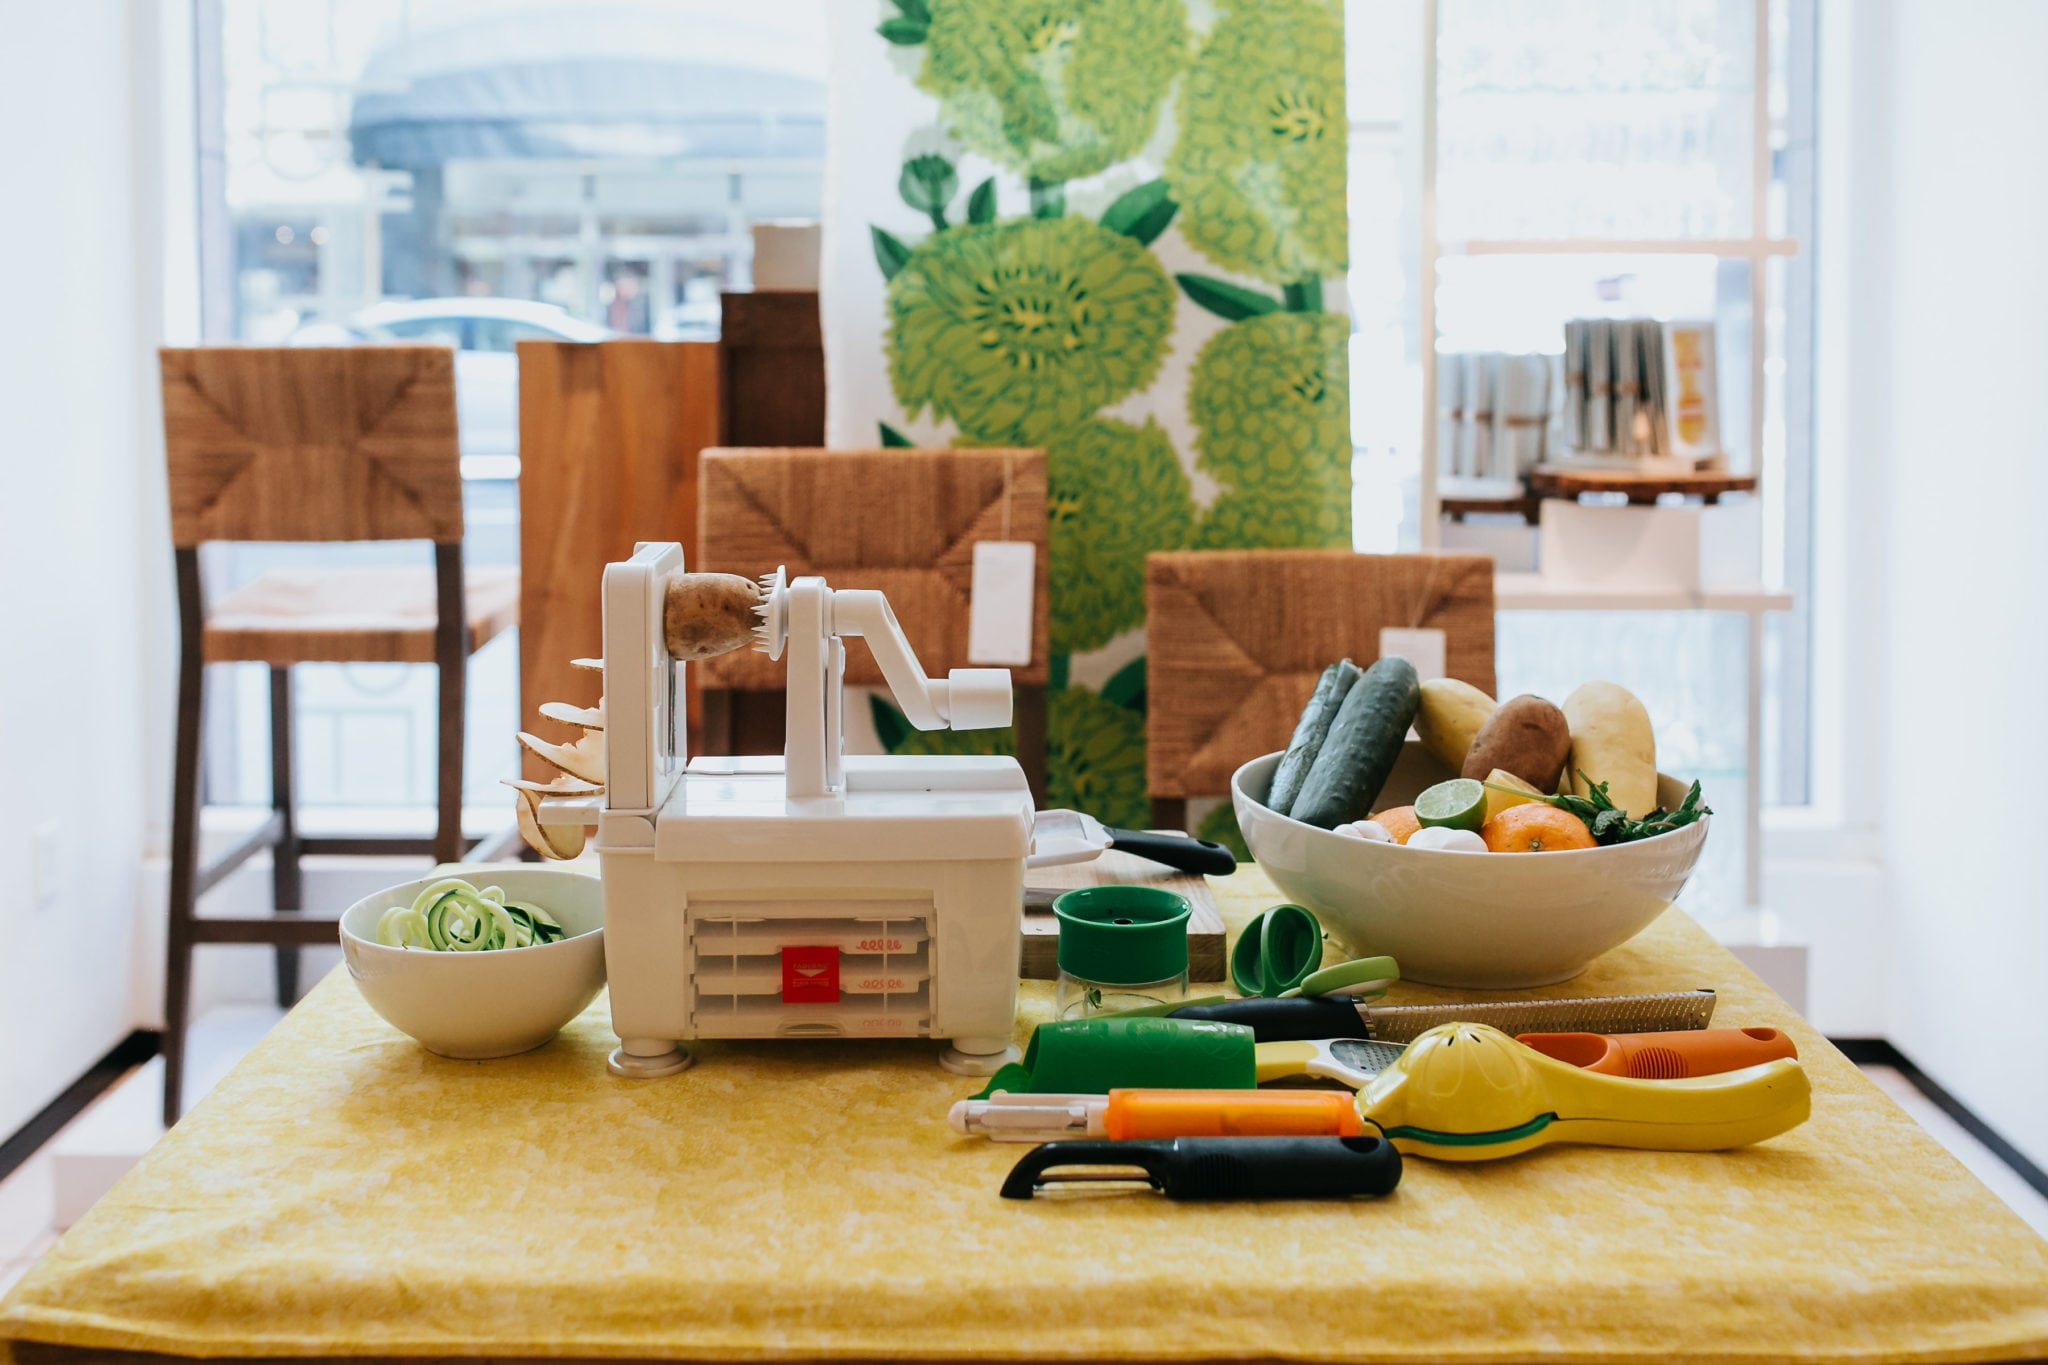 a crate and barrel vegetable spiralizer on a table surrounded by fresh vegetables